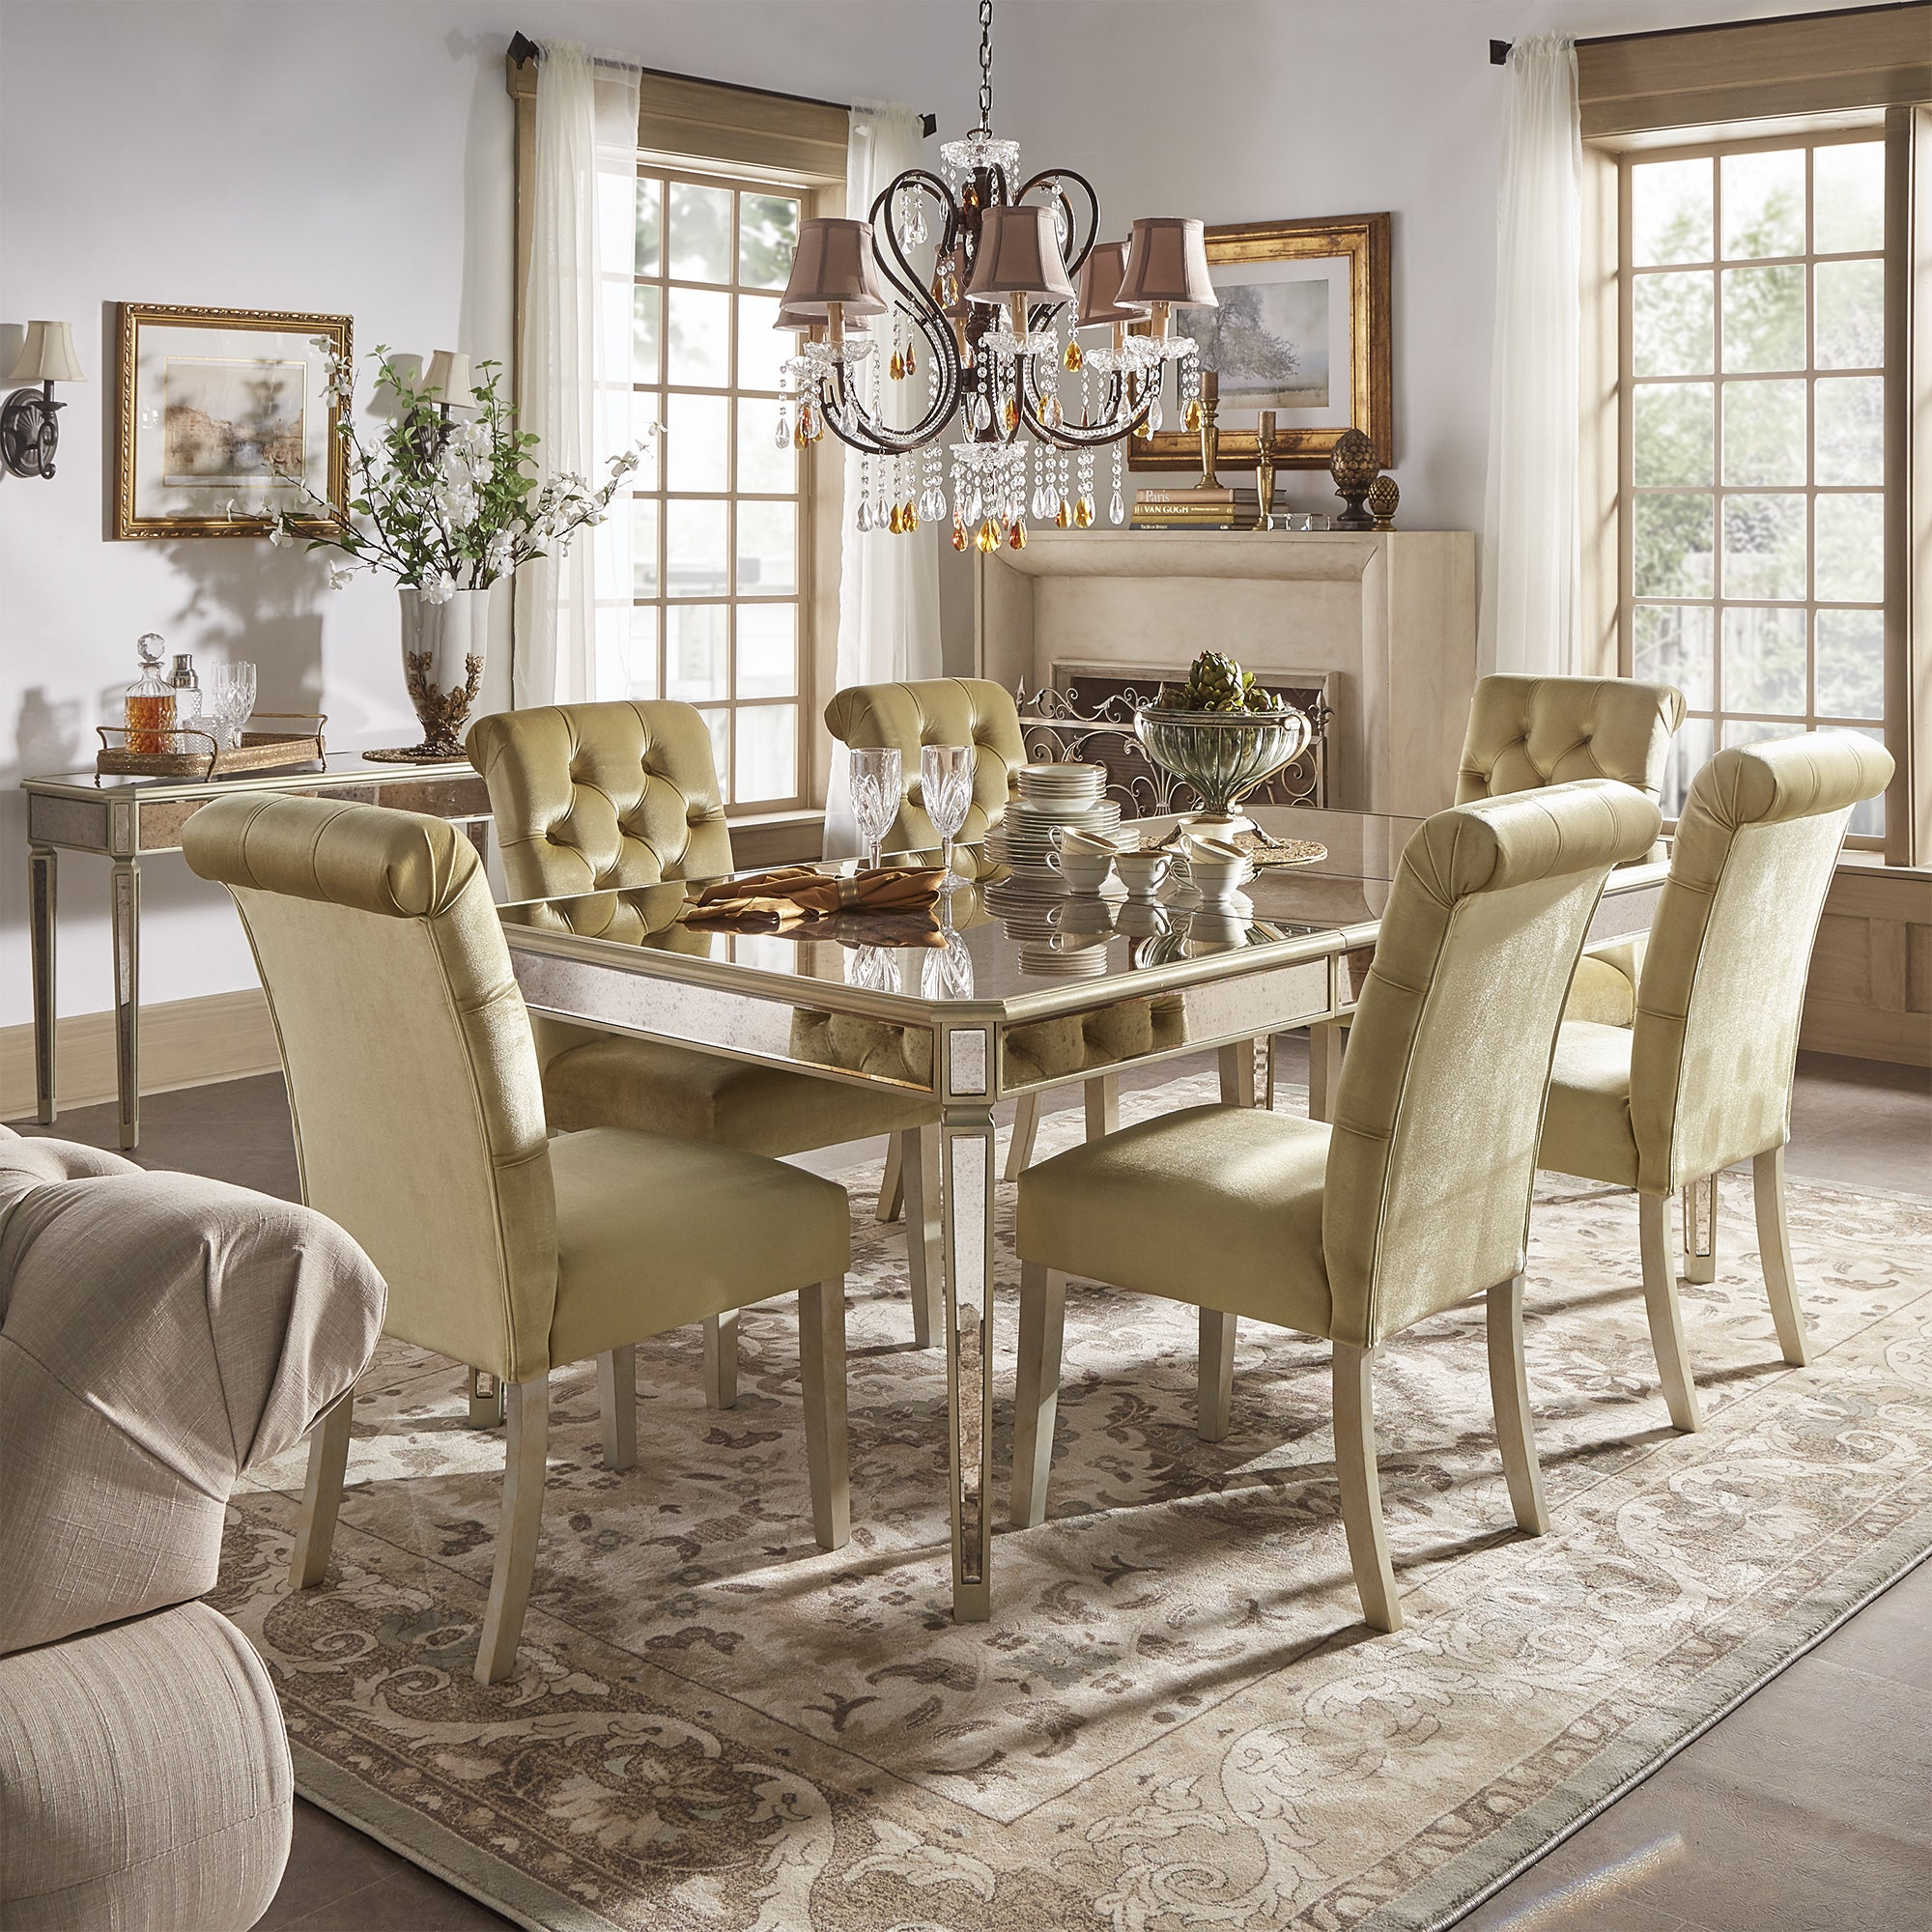 Clara Gold Velvet And Antique Gold Mirrored Dining Set By INSPIRE Q Bold    Free Shipping Today   Overstock.com   24171275 Nice Ideas